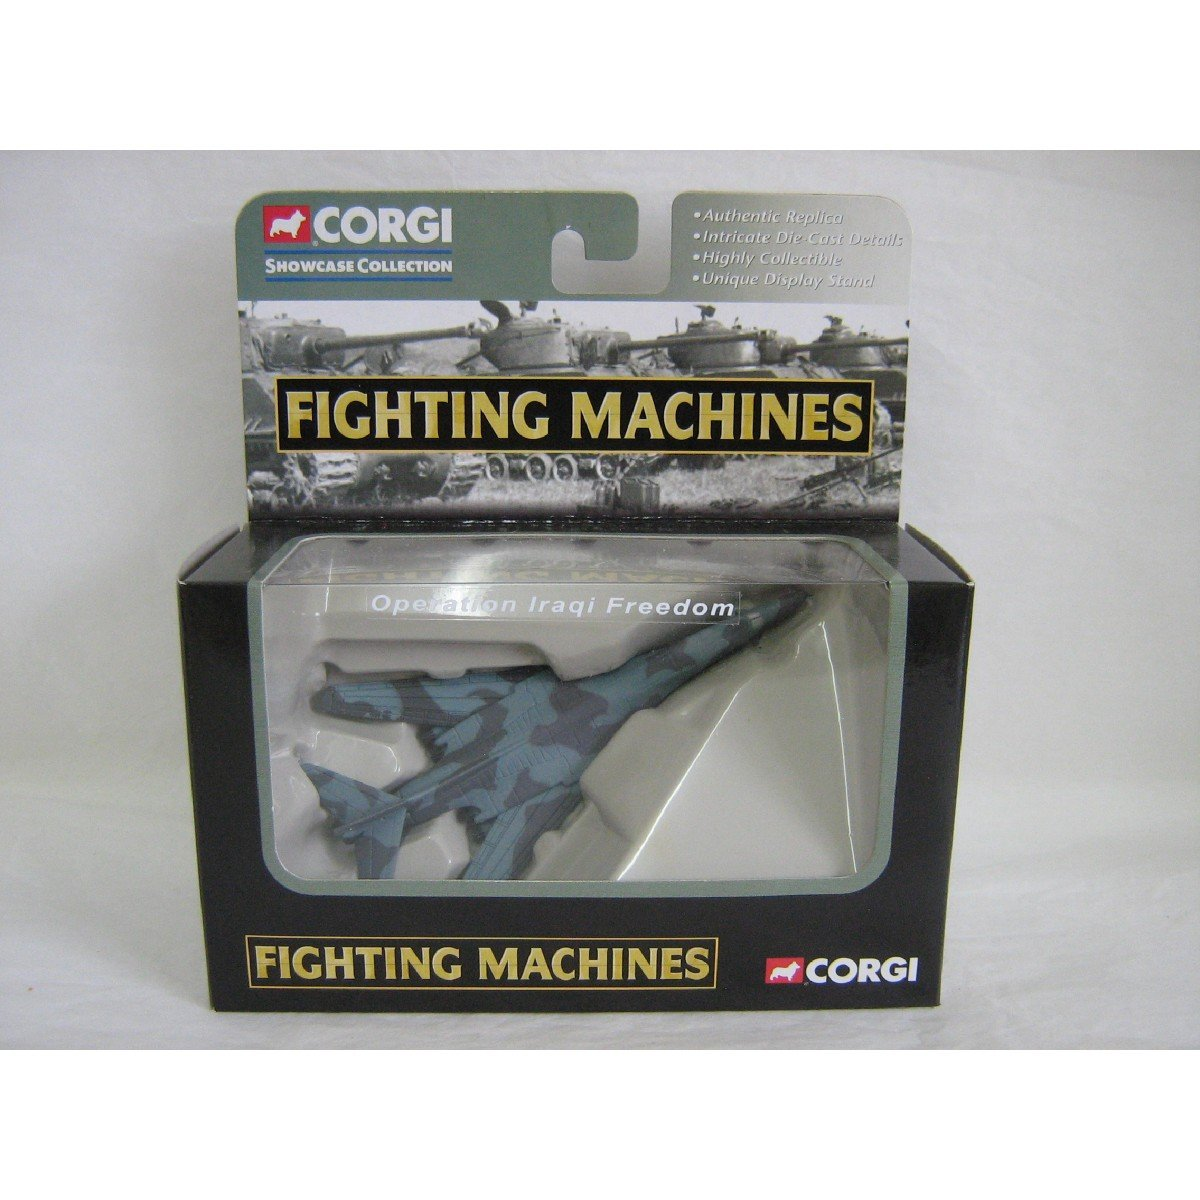 Corgi #20012: Fighting Machines > Operation Iraqi Freedom B-1 Model, Classic Showcase Diecast